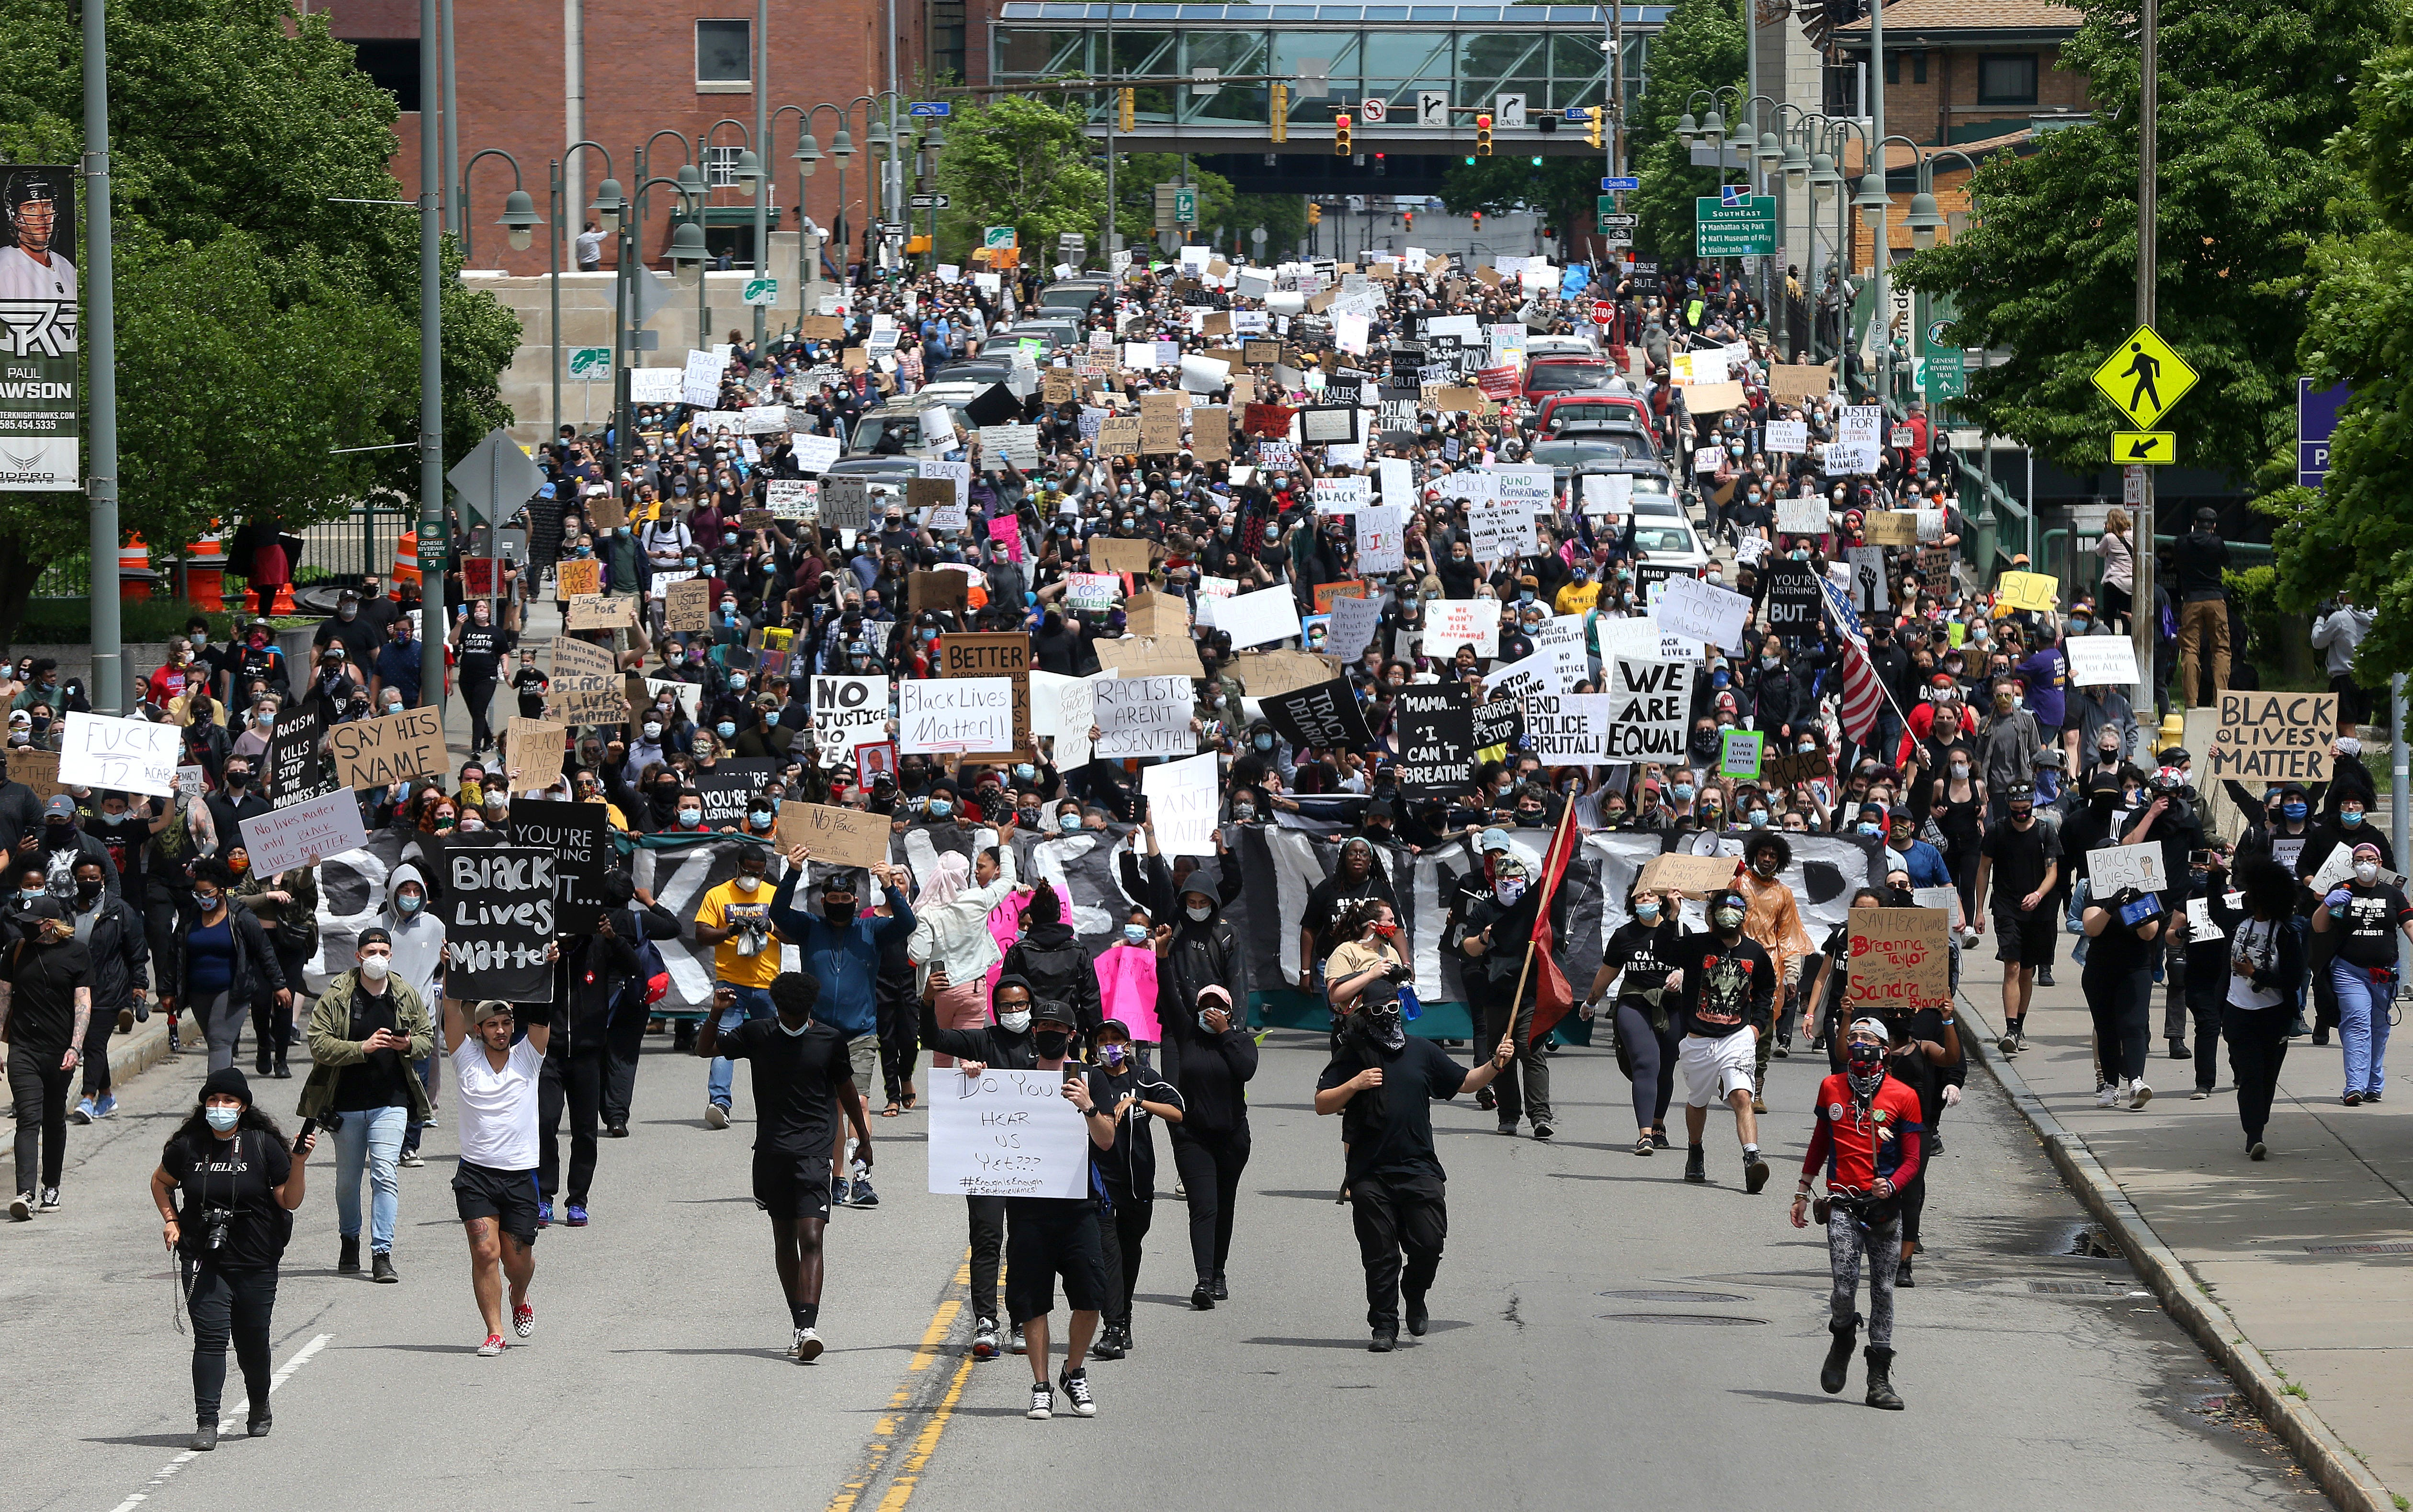 Several thousand protesters march on Court Street in downtown Rochester to the Public Safety Building and police headquarters, during a Black Lives Matter rally.